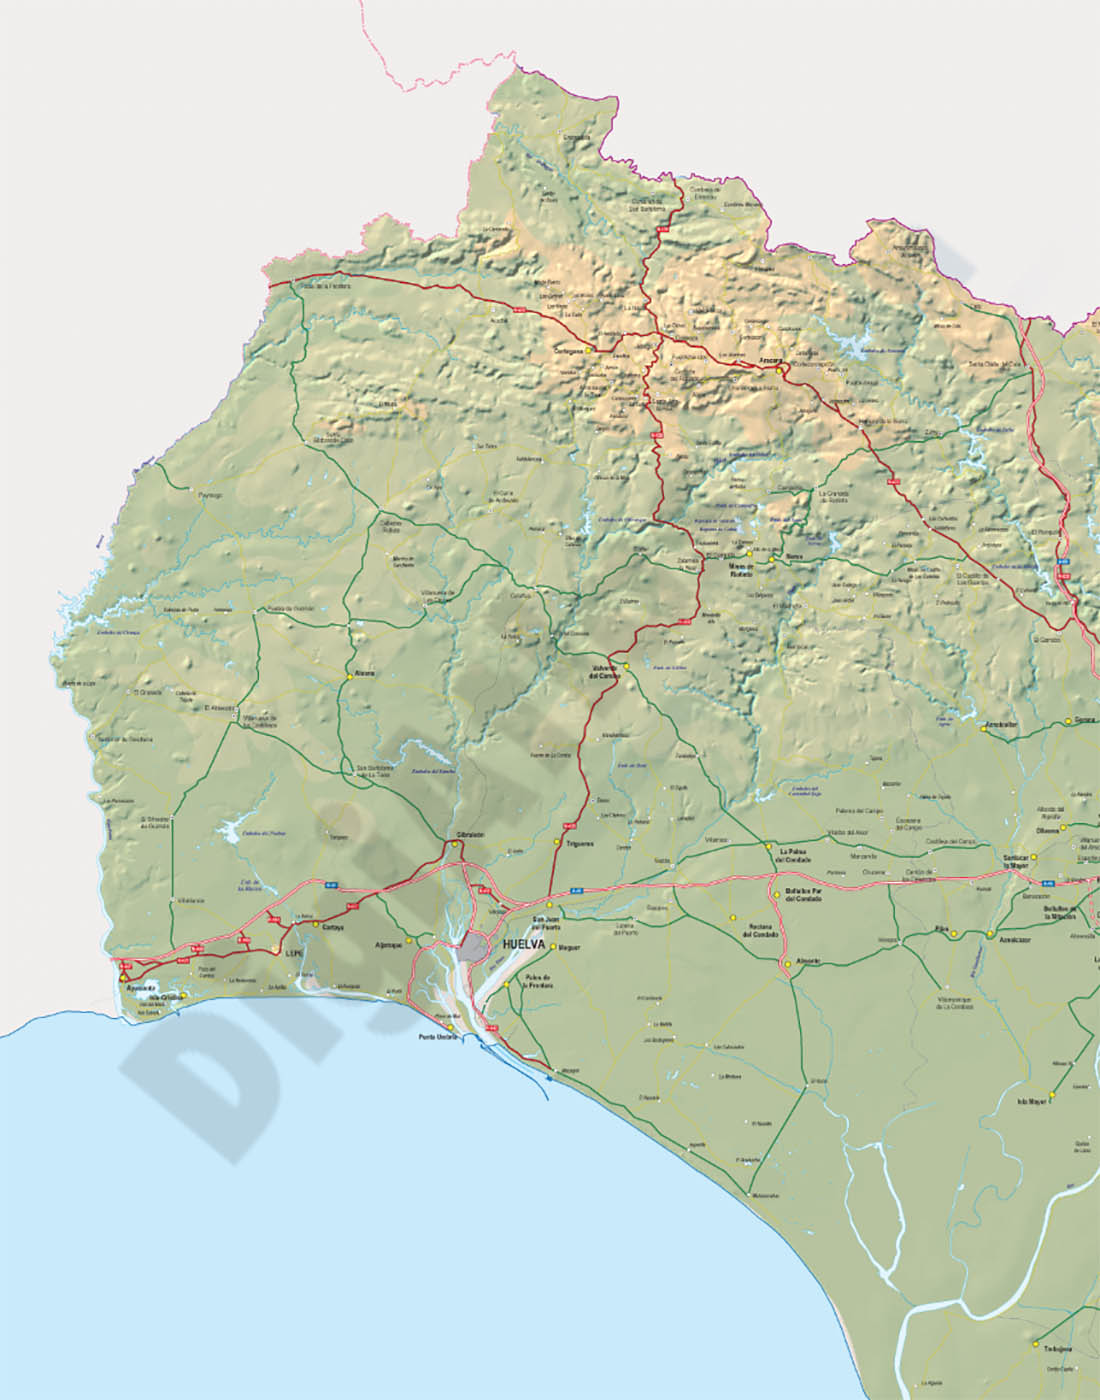 Map of Huelva